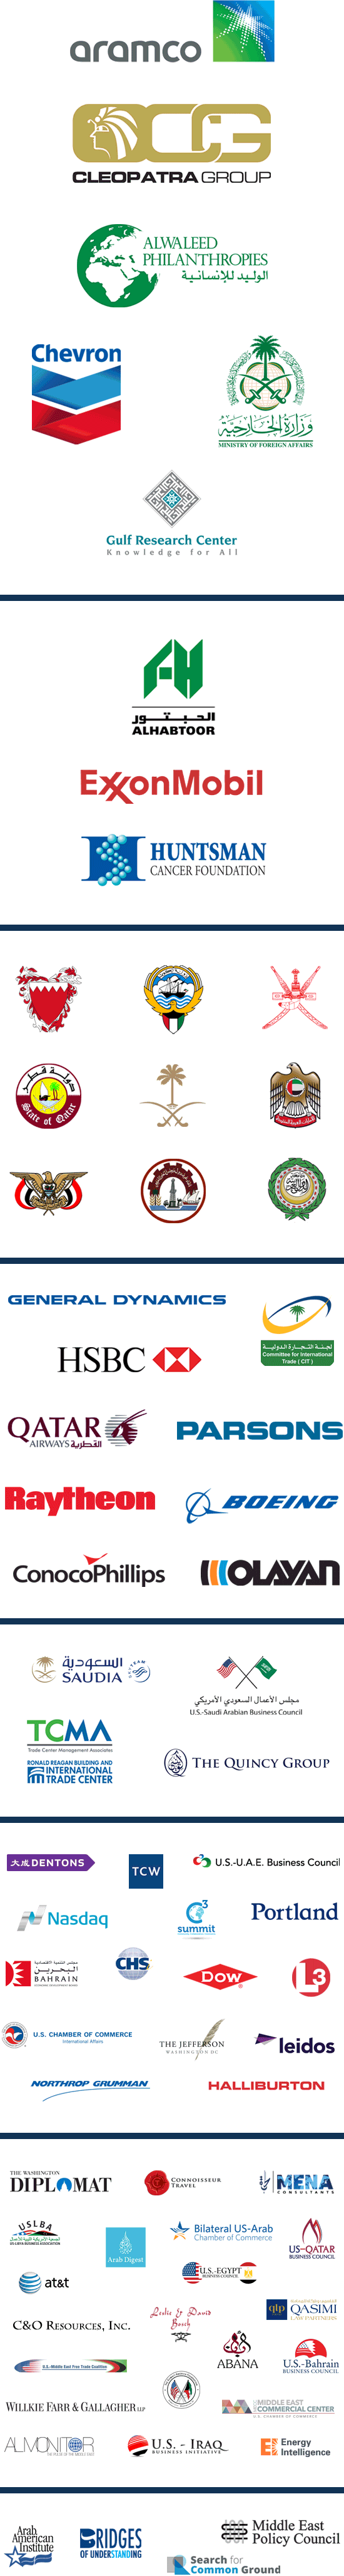 2016 Arab-U.S. Policymakers Conference Sponsors